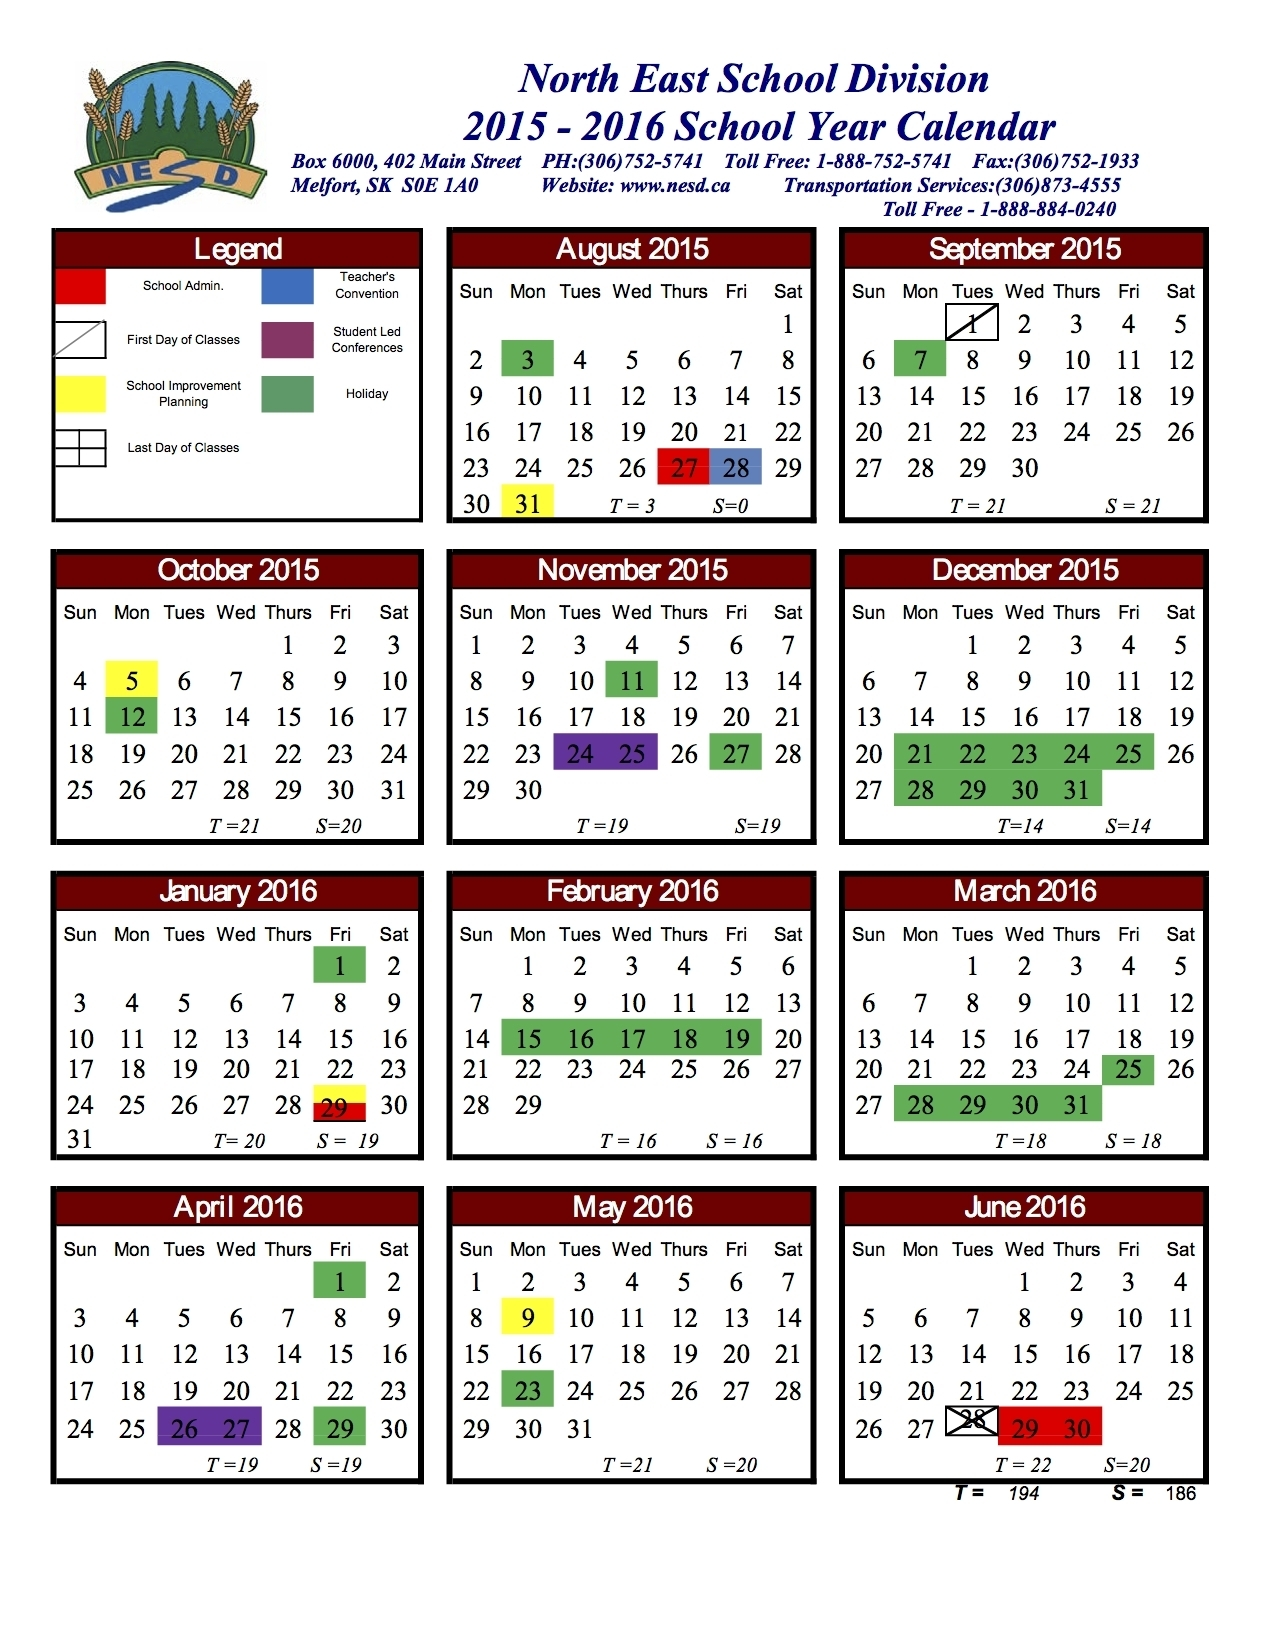 Unit 5 School Calendar 2019-20 | Calendar Design Ideas